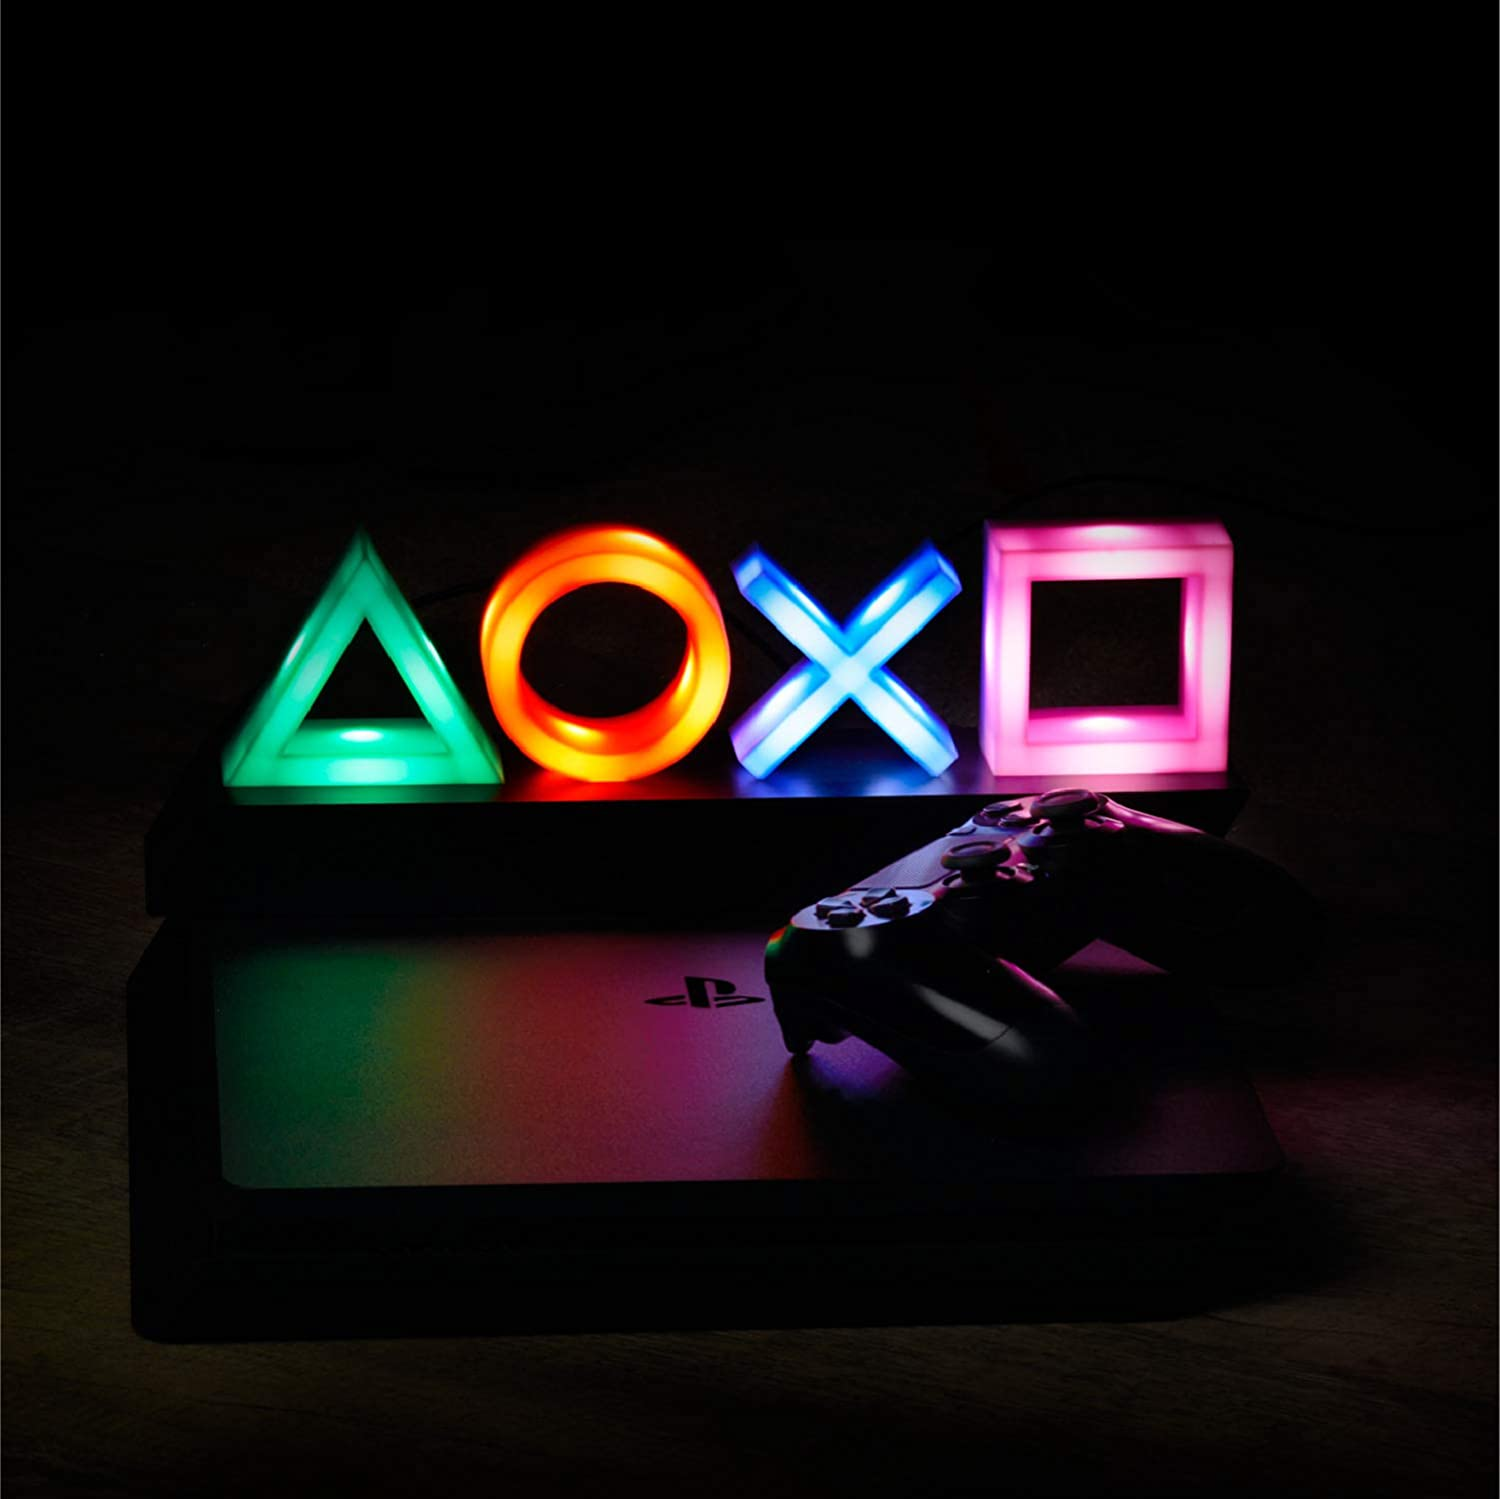 LAMP LIGHT PLAYSTATION ICONS (3 DIFFERENT SETTINGS)